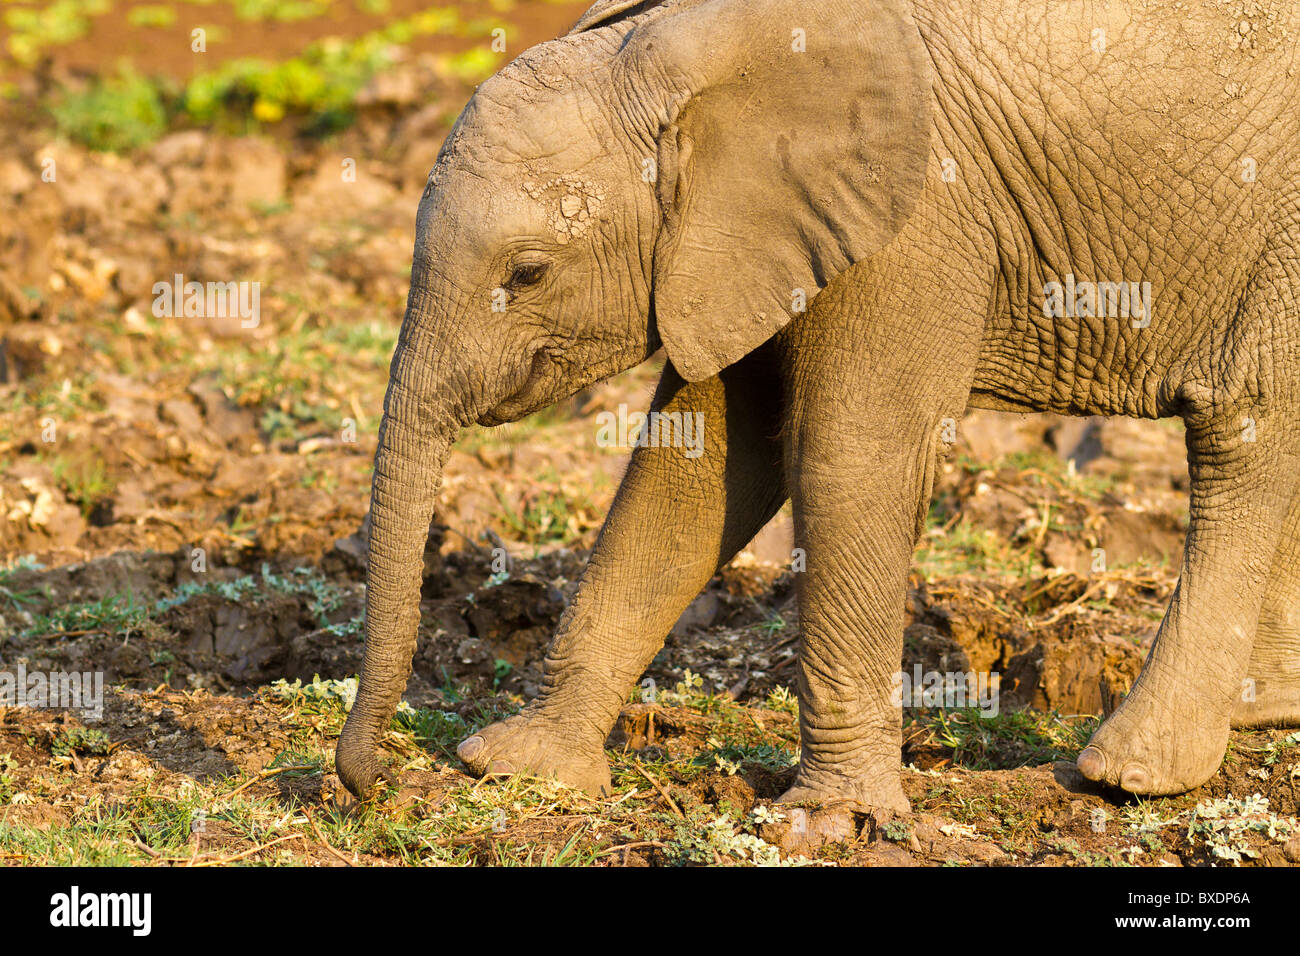 Elephant calf, seen while on safari in South Luangwa National Park, Zambia, Africa. - Stock Image